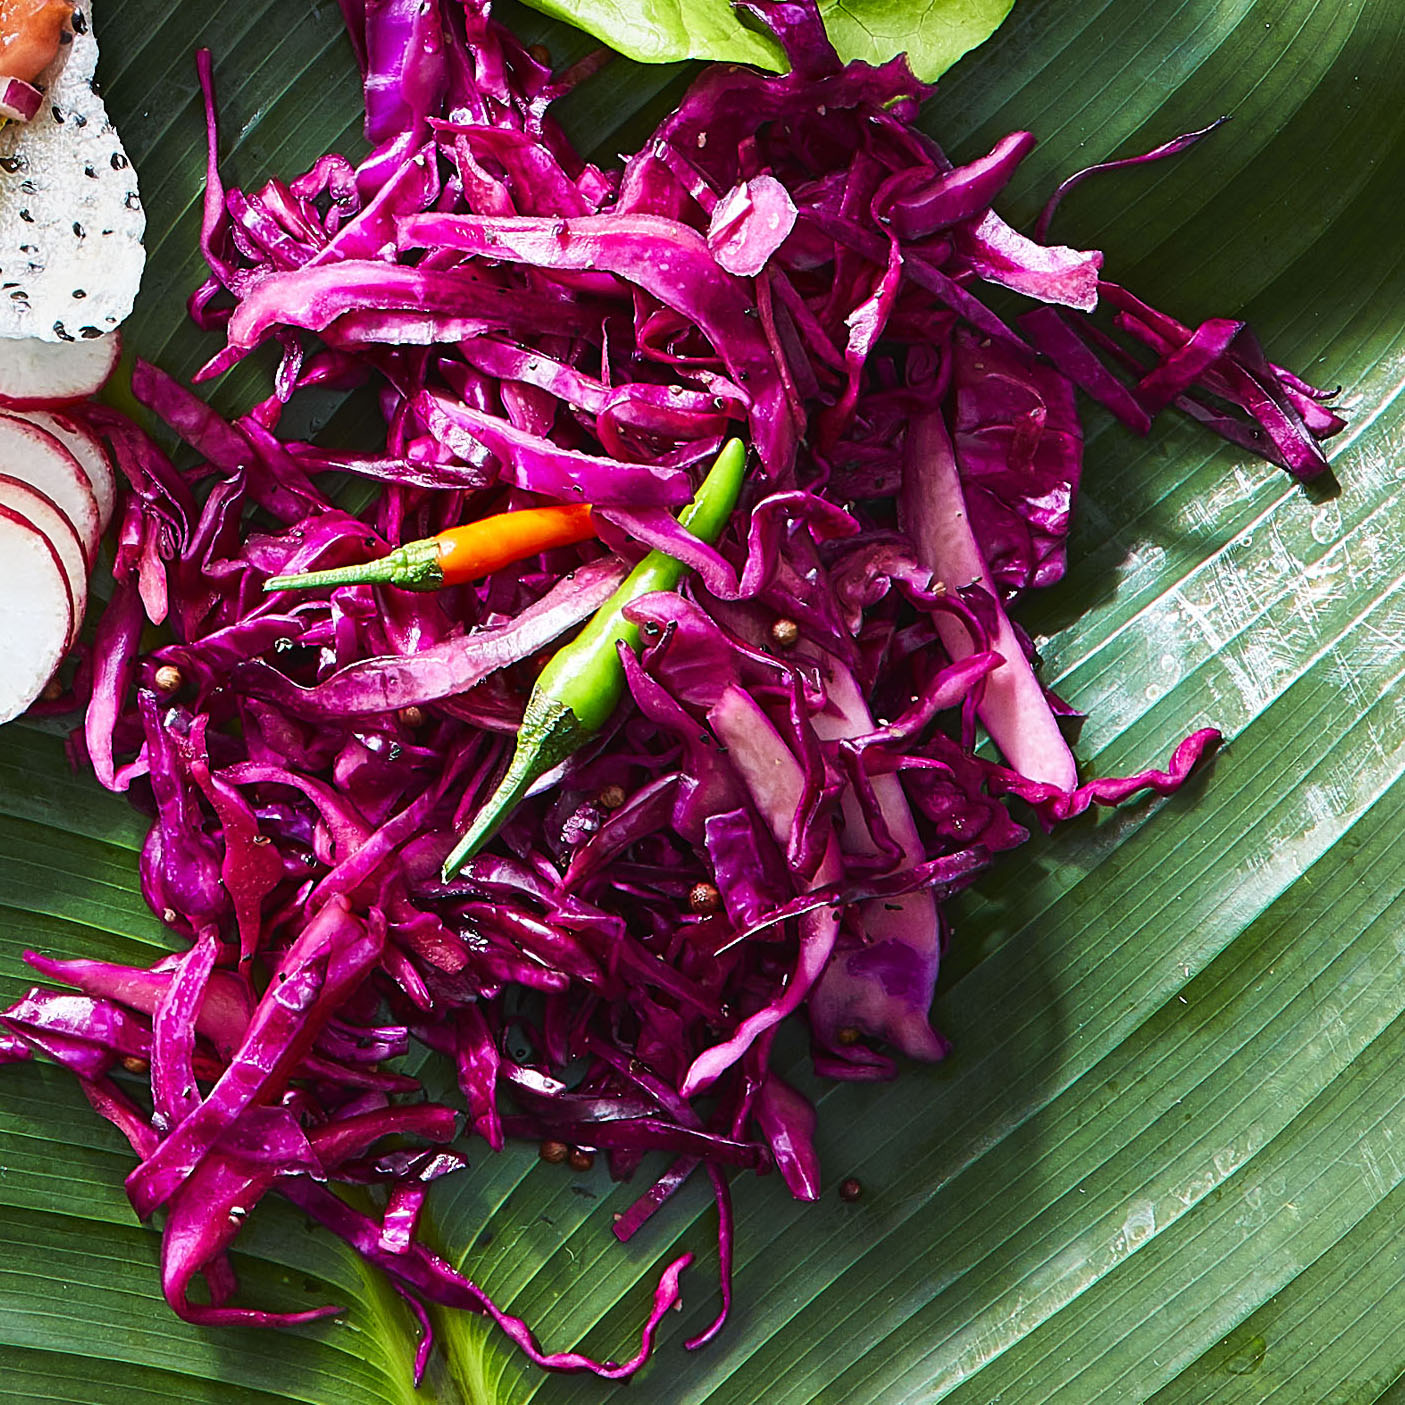 Quick-Pickled Red Cabbage (Atchara)